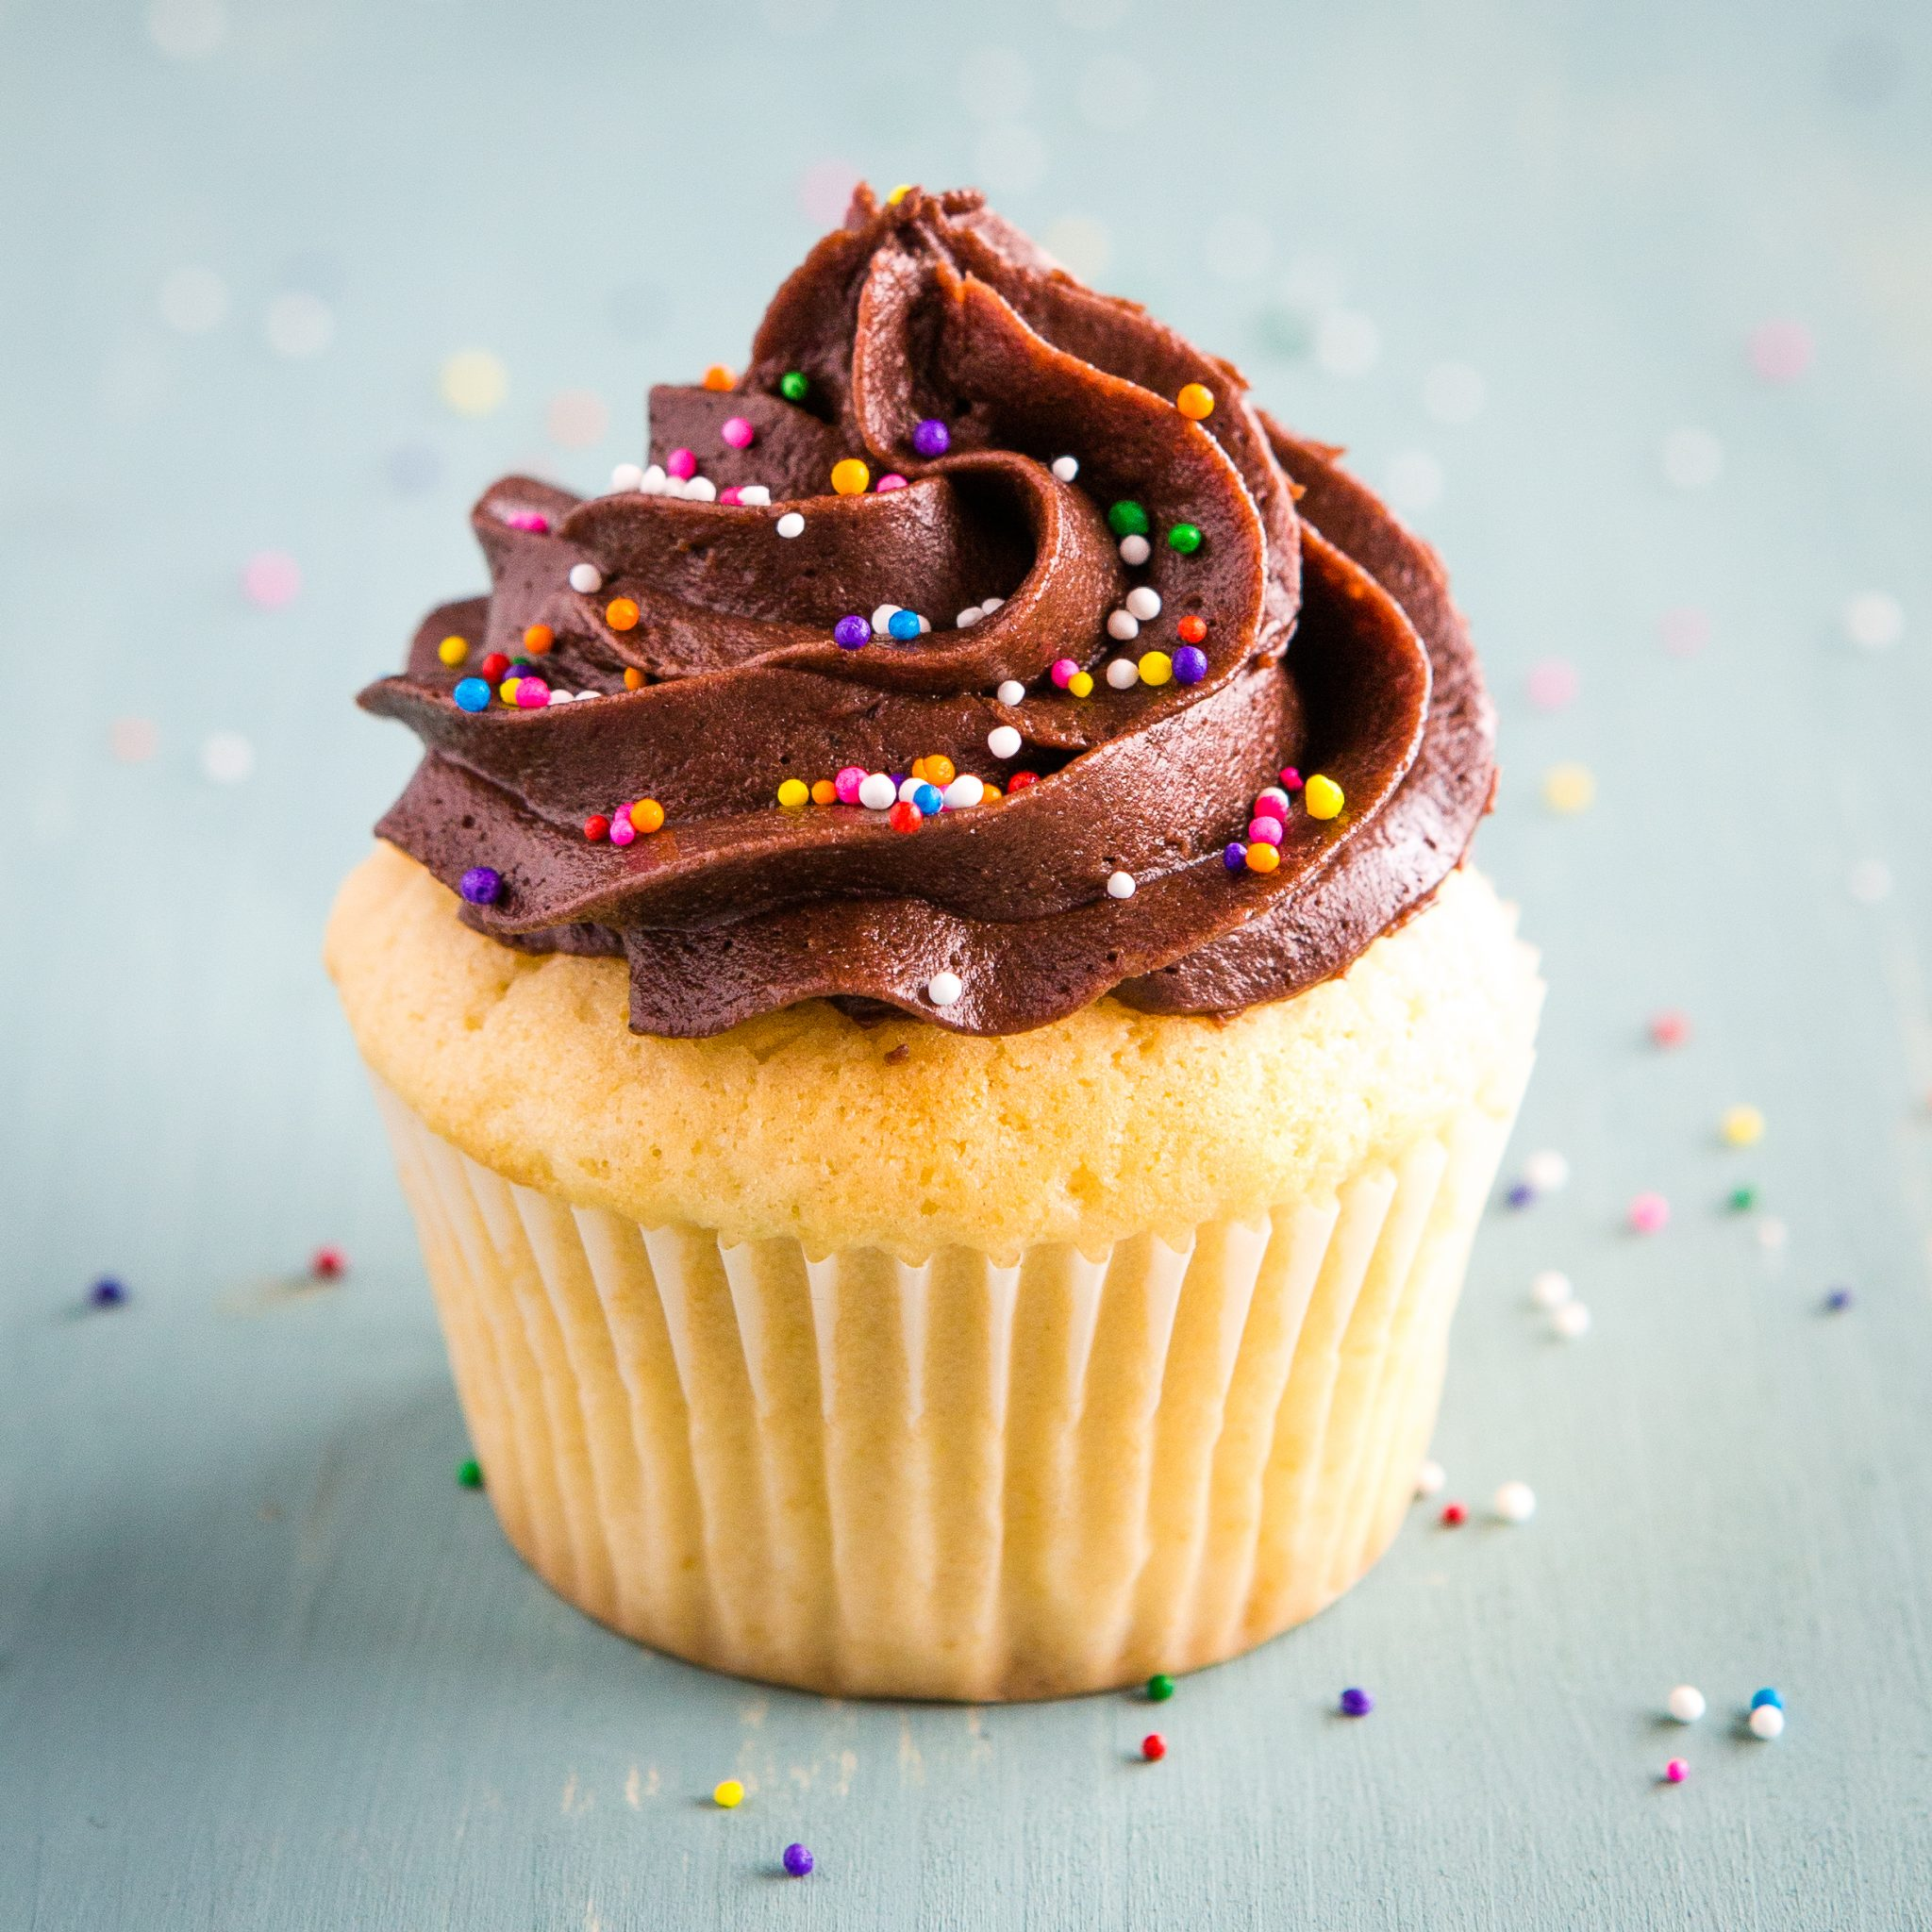 Birthday Cake Cupcakes With Chocolate Frosting